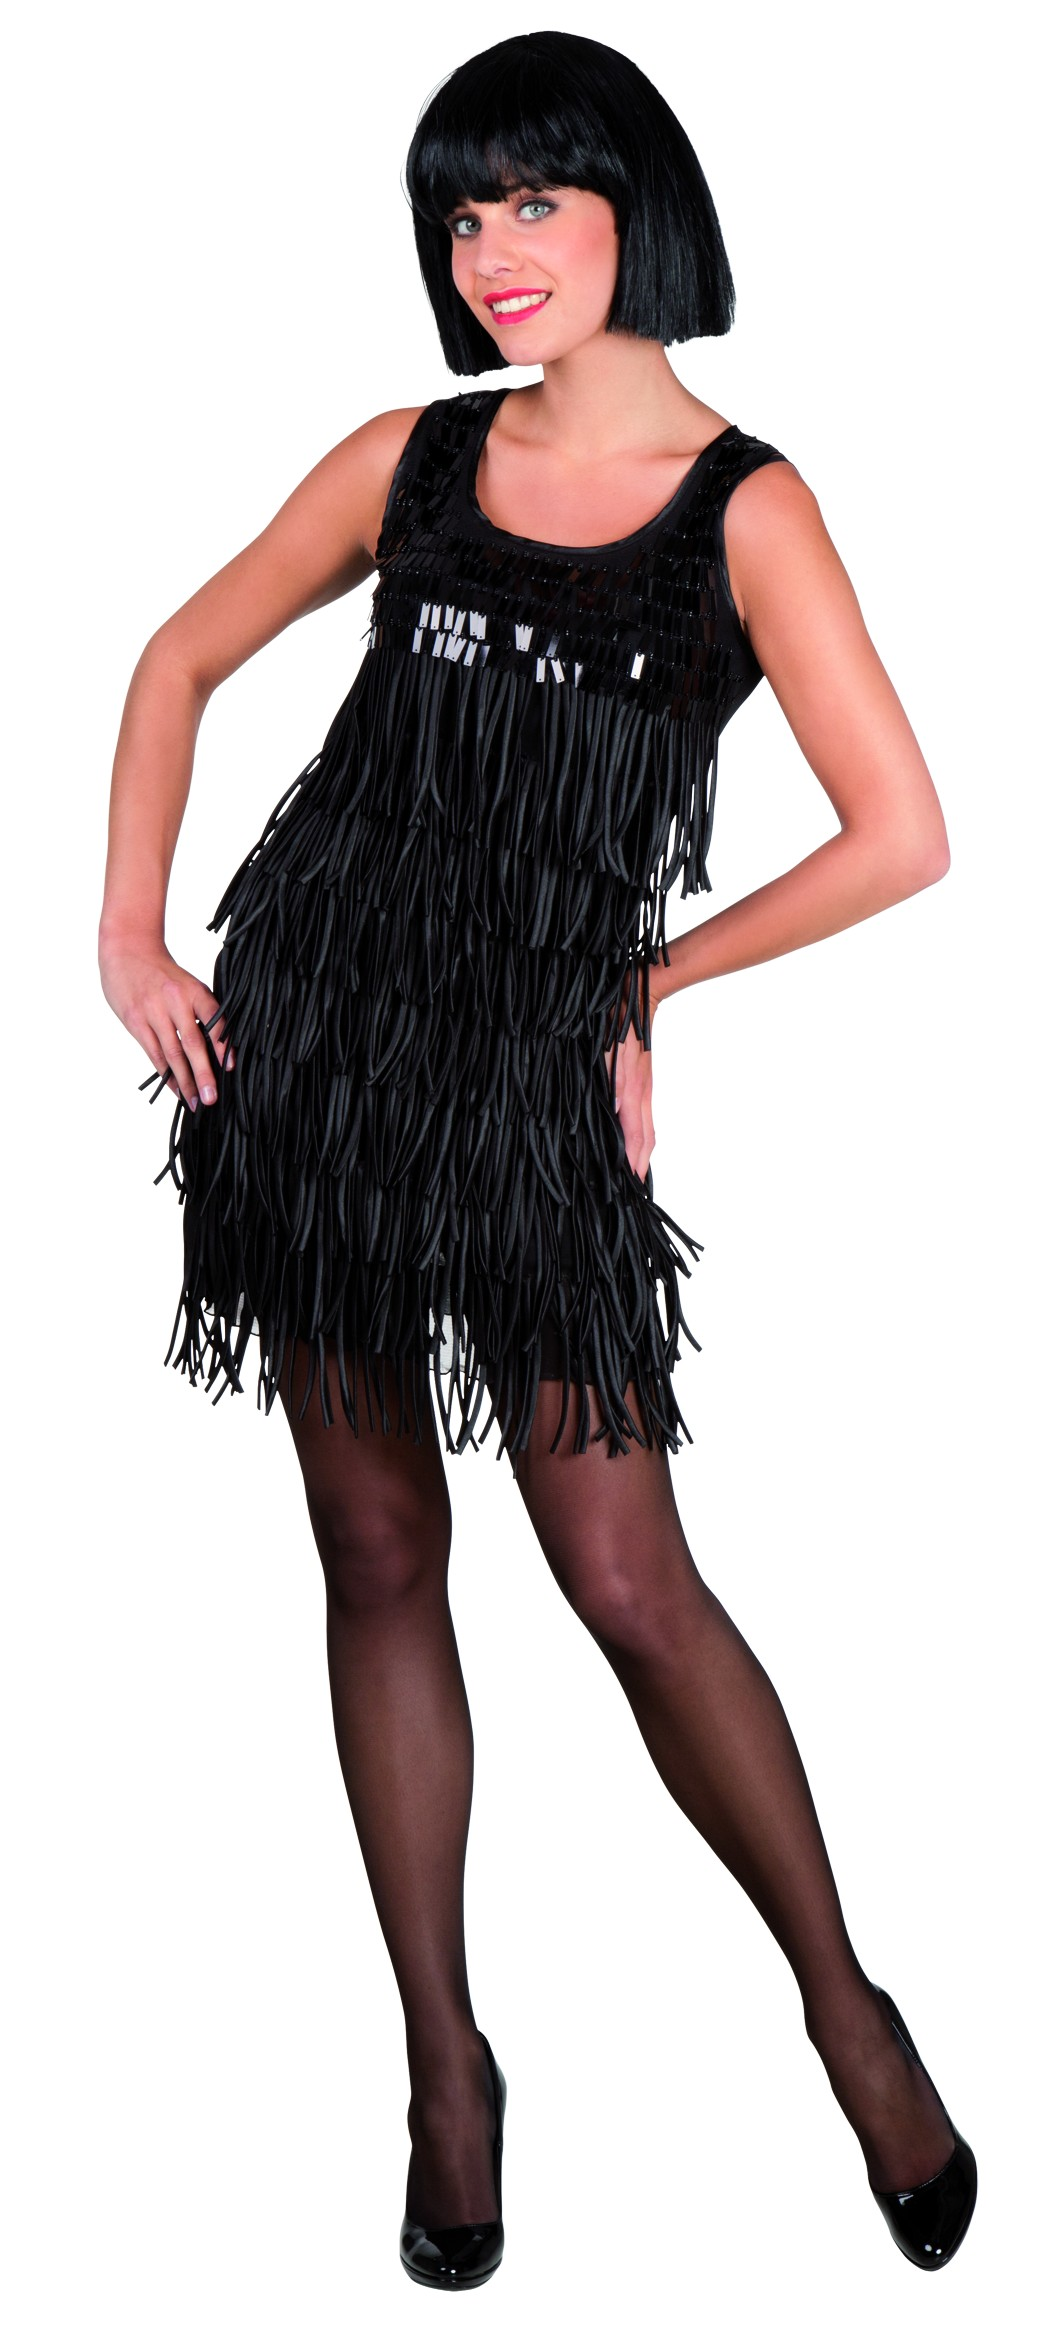 D guisement robe charleston d guisement cabaret pas cher - Robe de soiree charleston ...